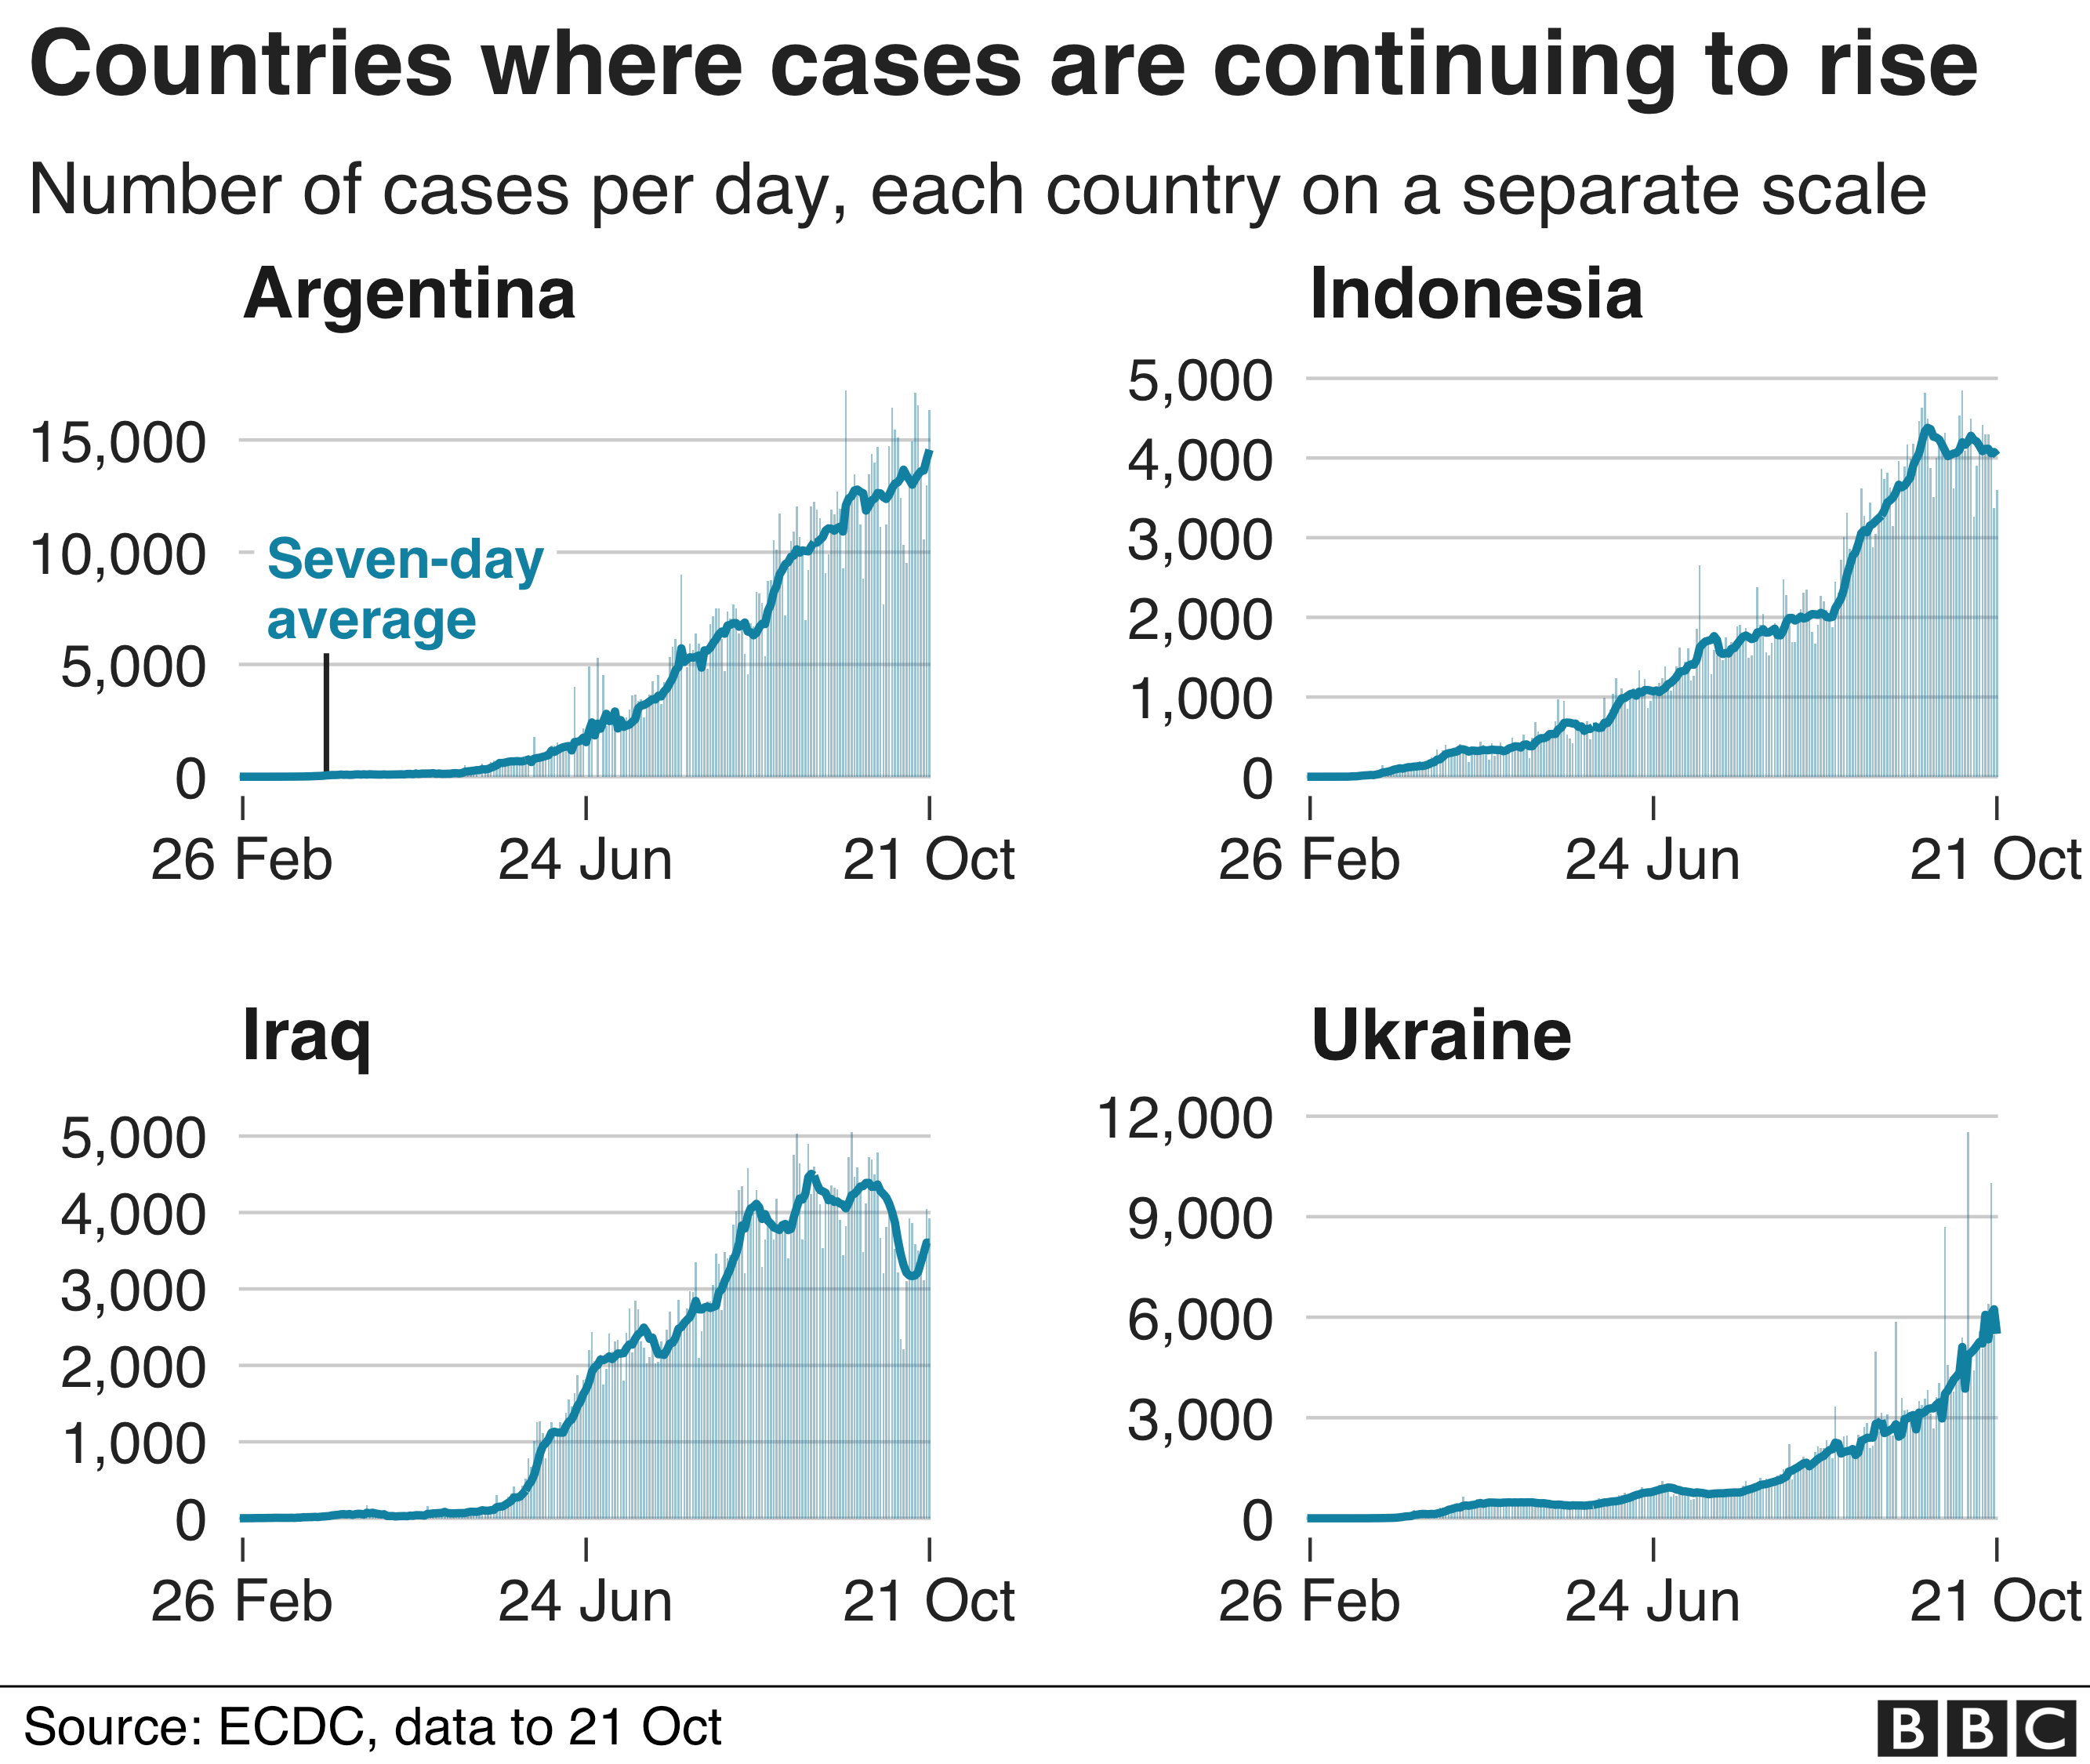 Chart showing countries where cases are continuing to rise quickly